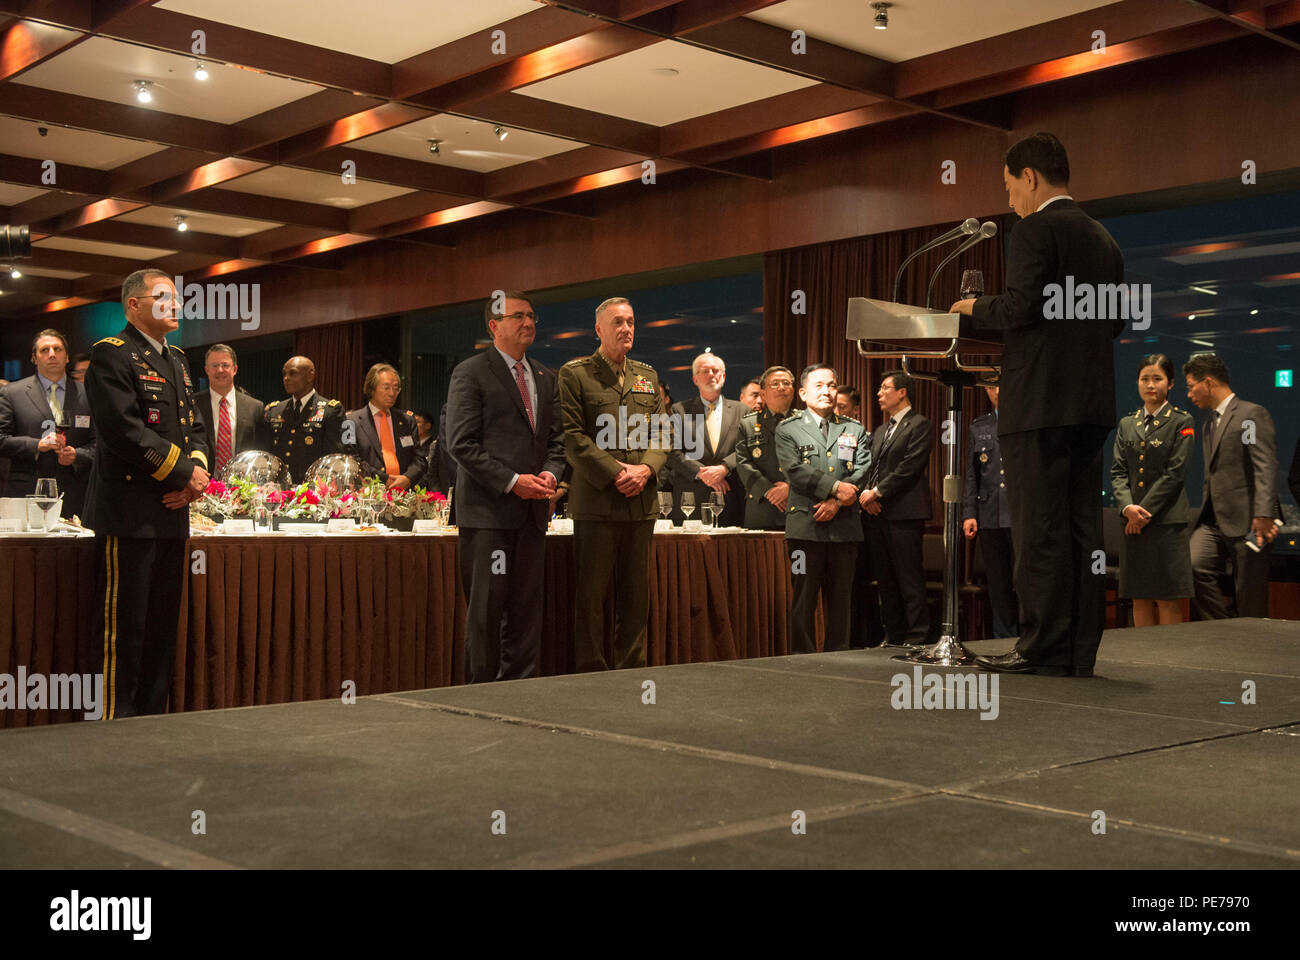 Republic of Korea Minister of Defense Minkoo Han delivers remarks during the Security Consultative Meeting reception in Seoul, South Korea, Nov. 1, 2015. (Photo by Senior Master Sgt. Adrian Cadiz)(Released) Stock Photo